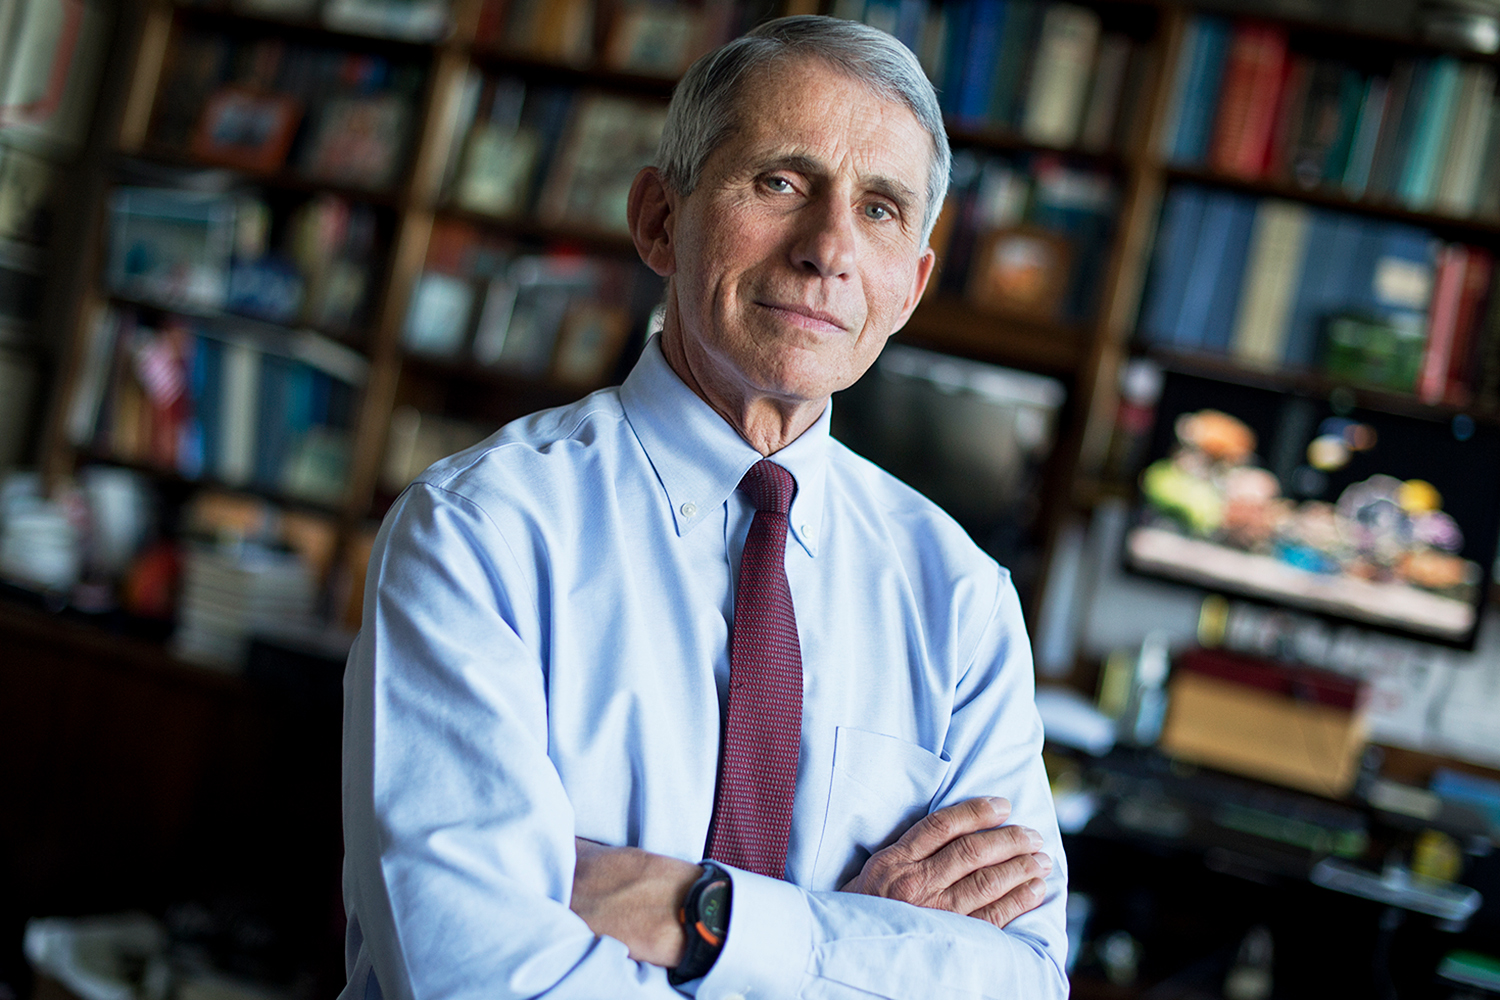 Dr. Anthony Fauci, Director of the National Institute of Allergy and Infectious Diseases, is photographed at the NIH.